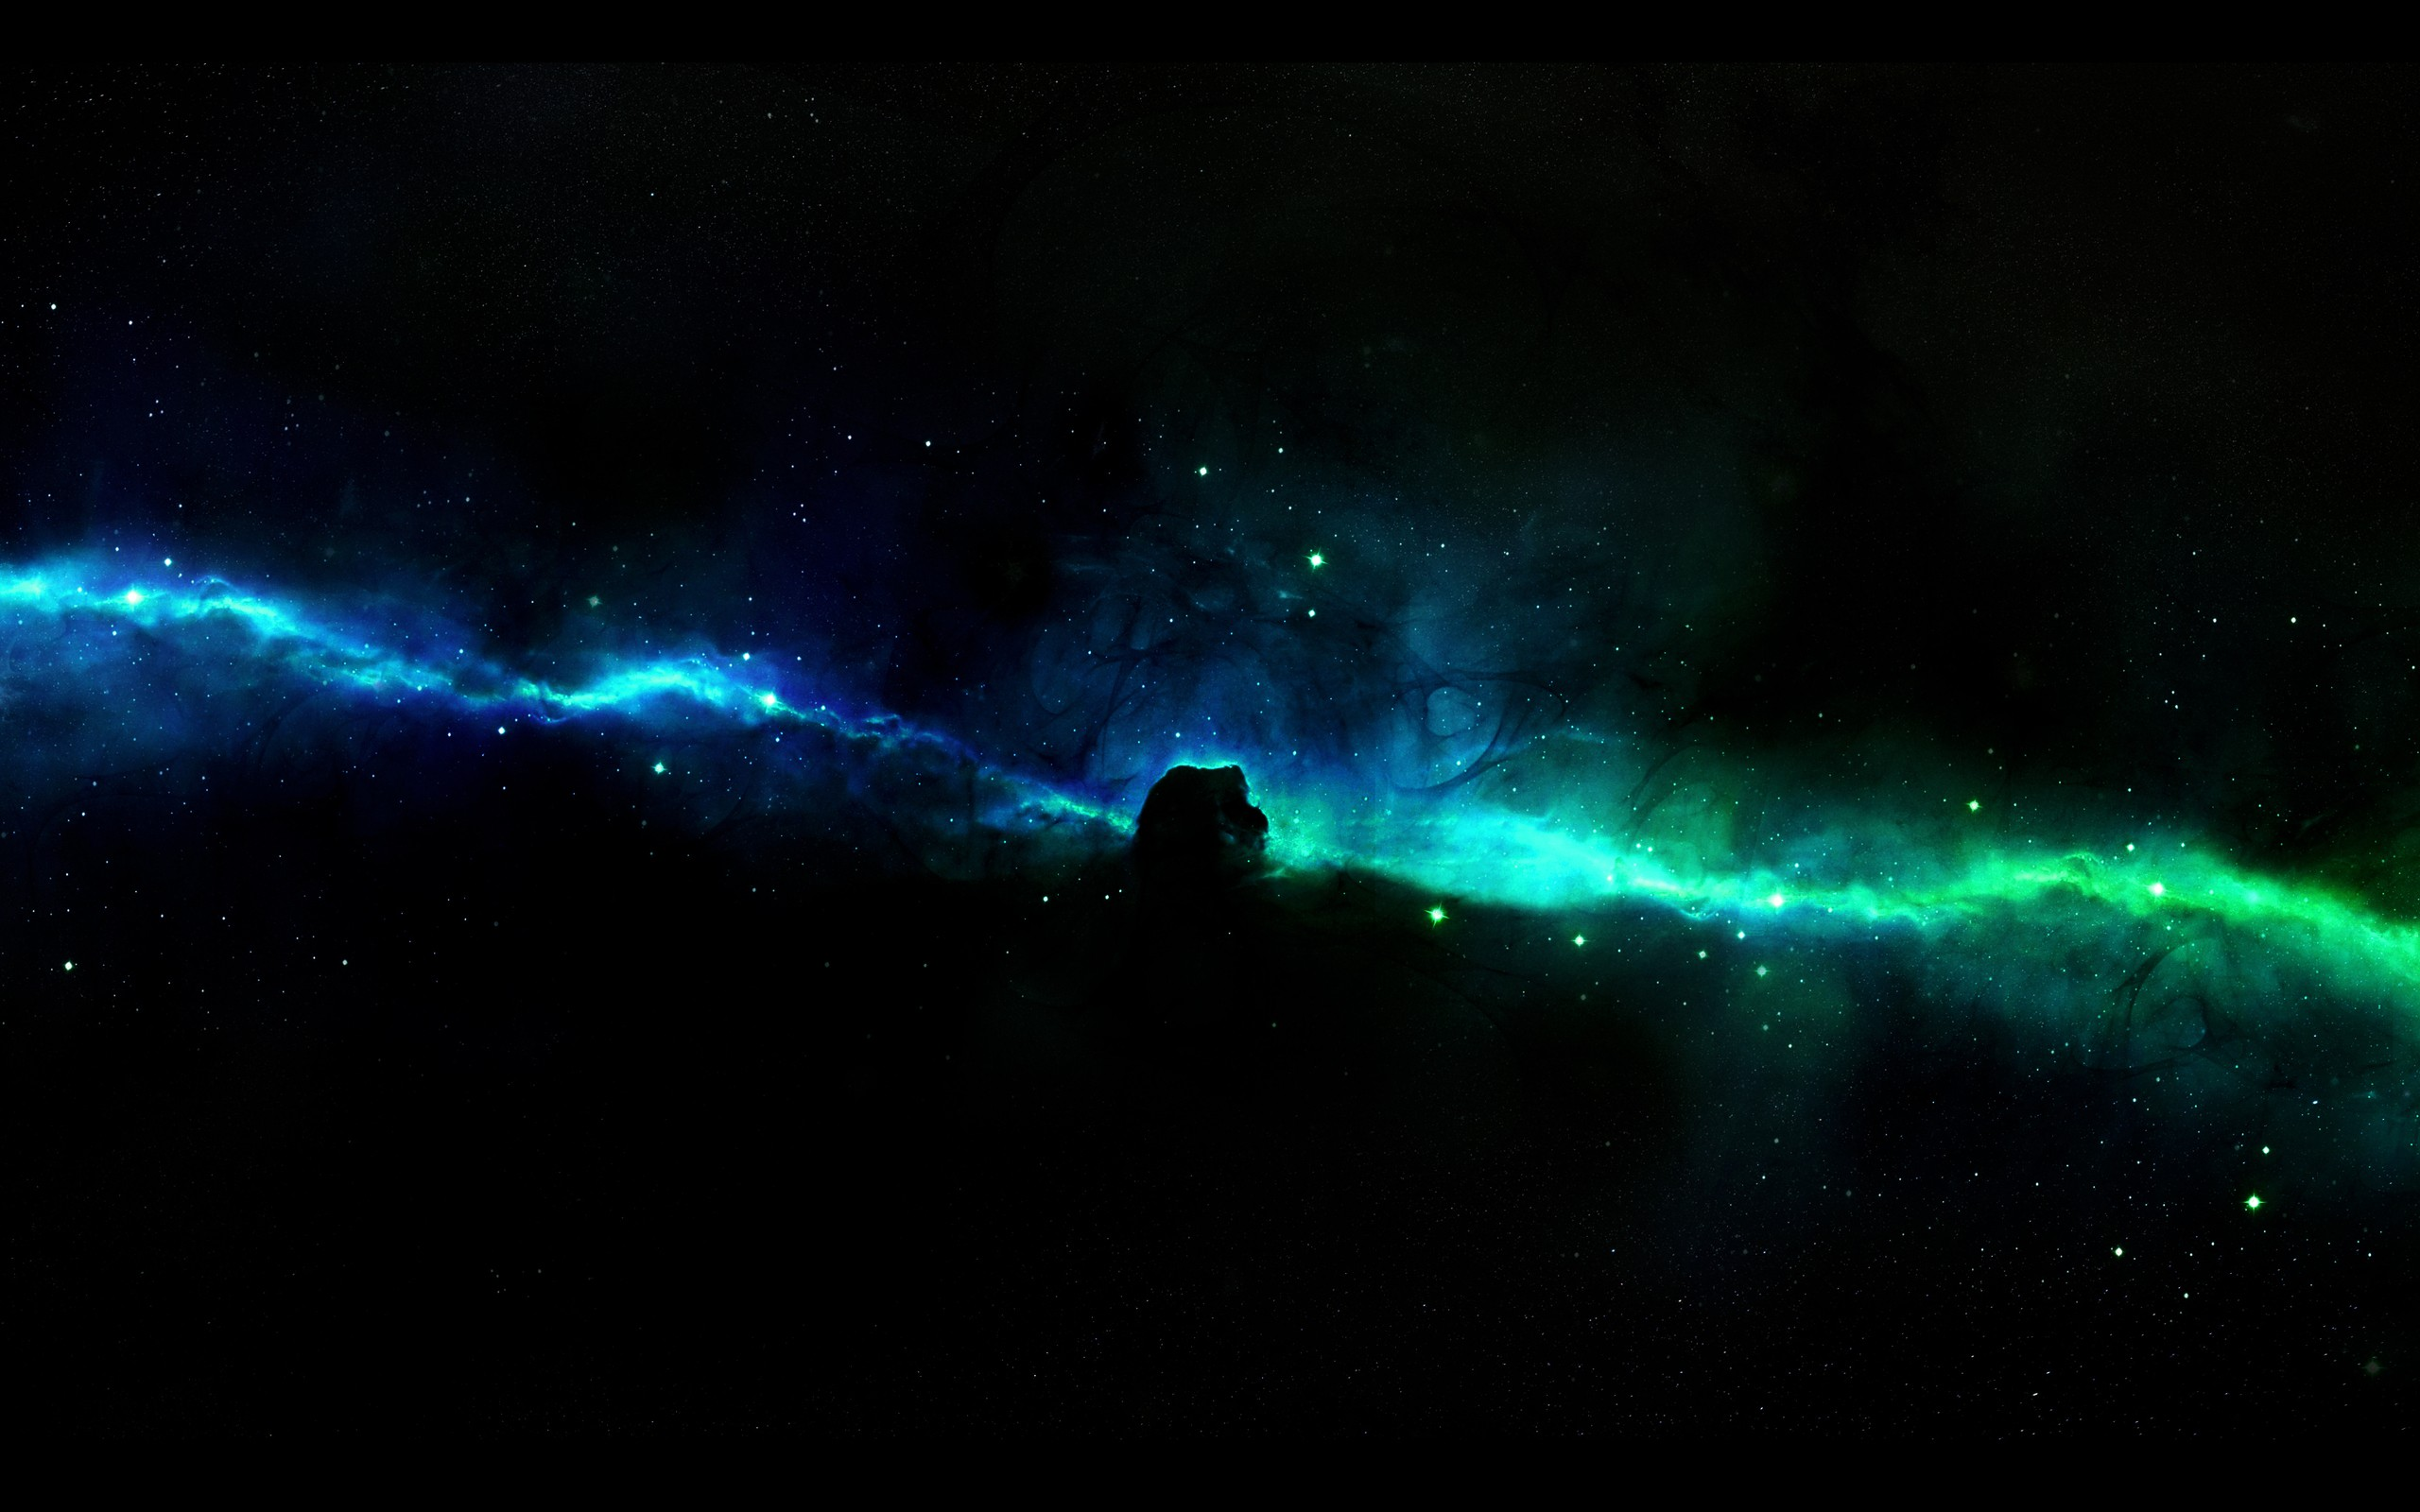 space hd 1920x1200 - photo #29